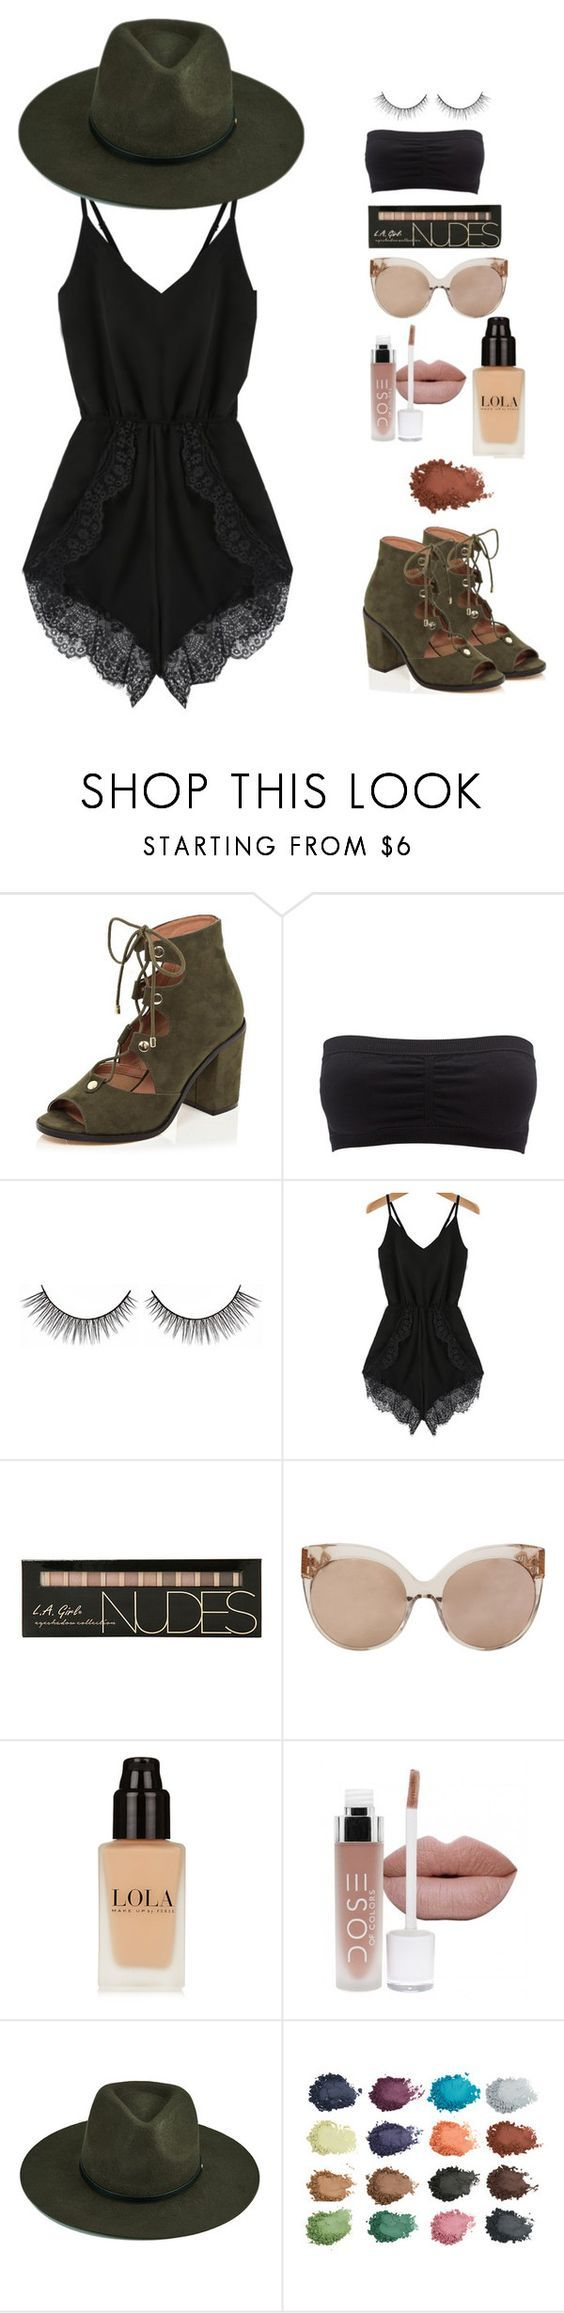 """""""cochella"""" by pandadonuttwin ❤ liked on Polyvore featuring River Island, Charlotte Russe and Linda Farrow:"""